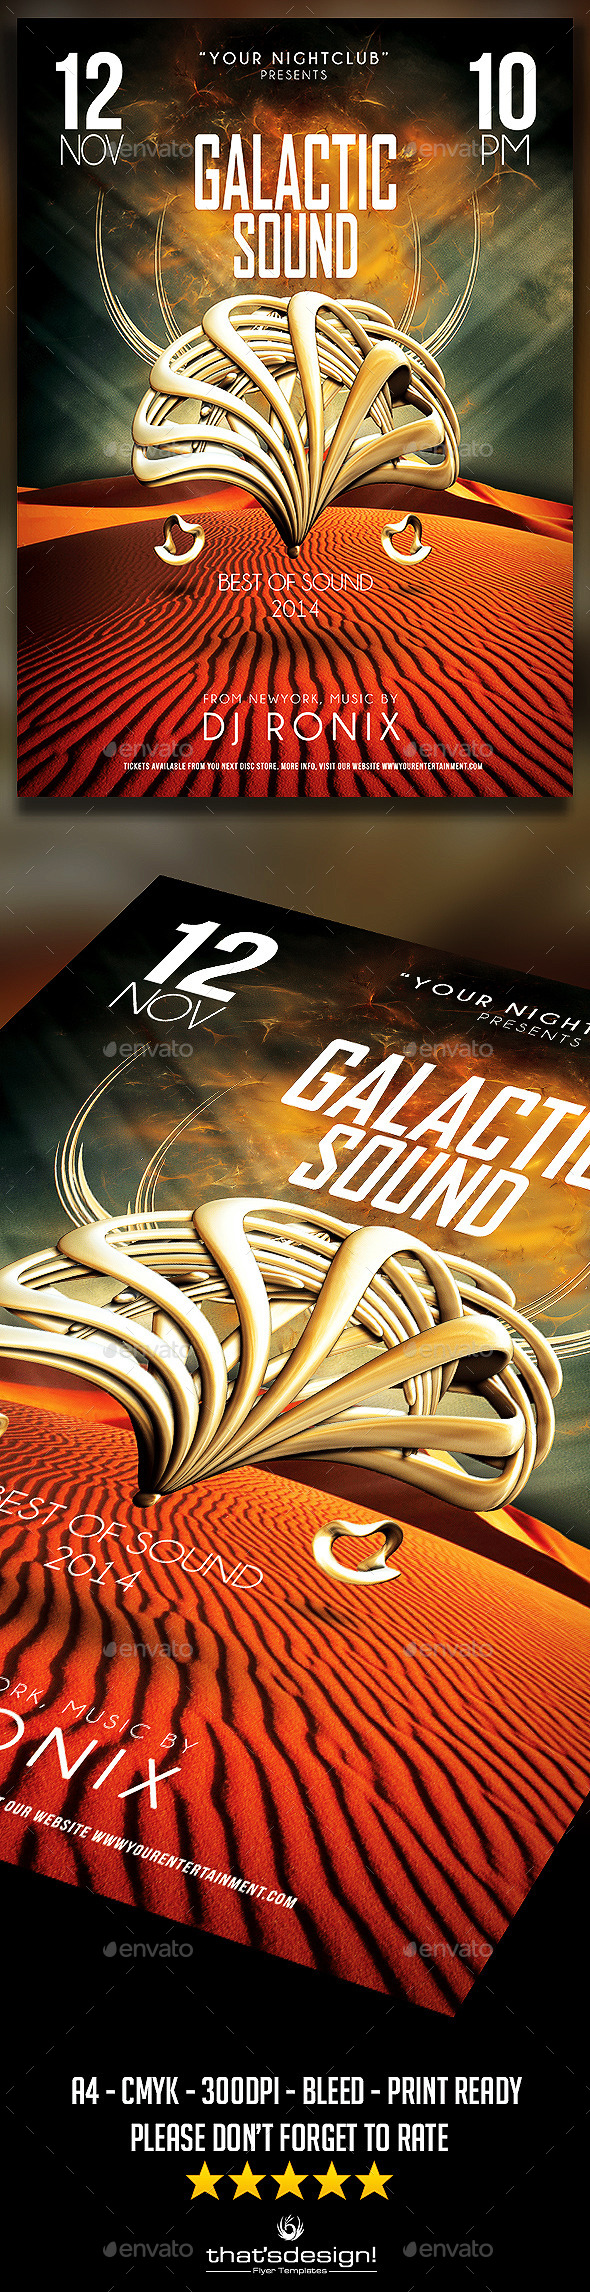 Galactic Sound Flyer V1 - Clubs & Parties Events